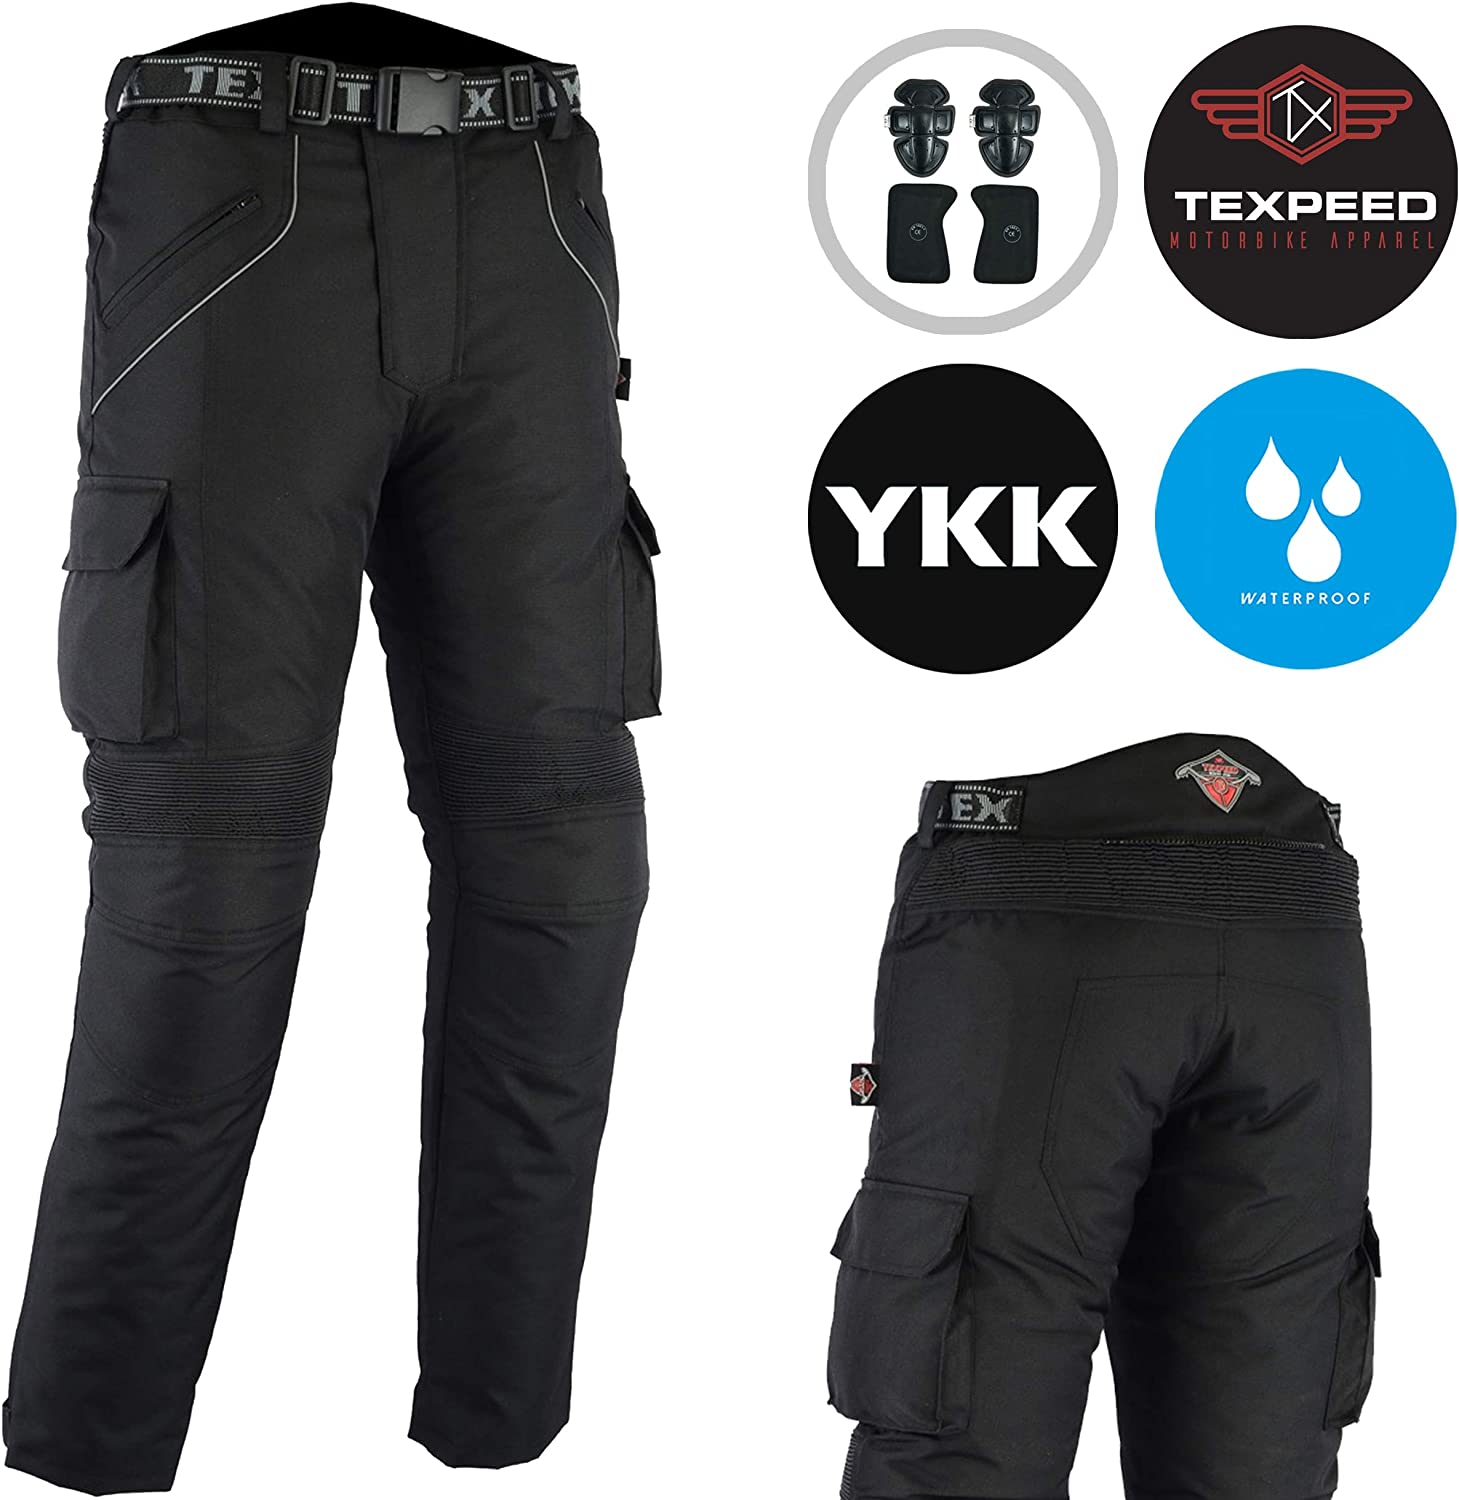 Huge Size Range 4 Colours Texpeed XTRA Breathable Armoured Motorcycle//Motorbike Trousers